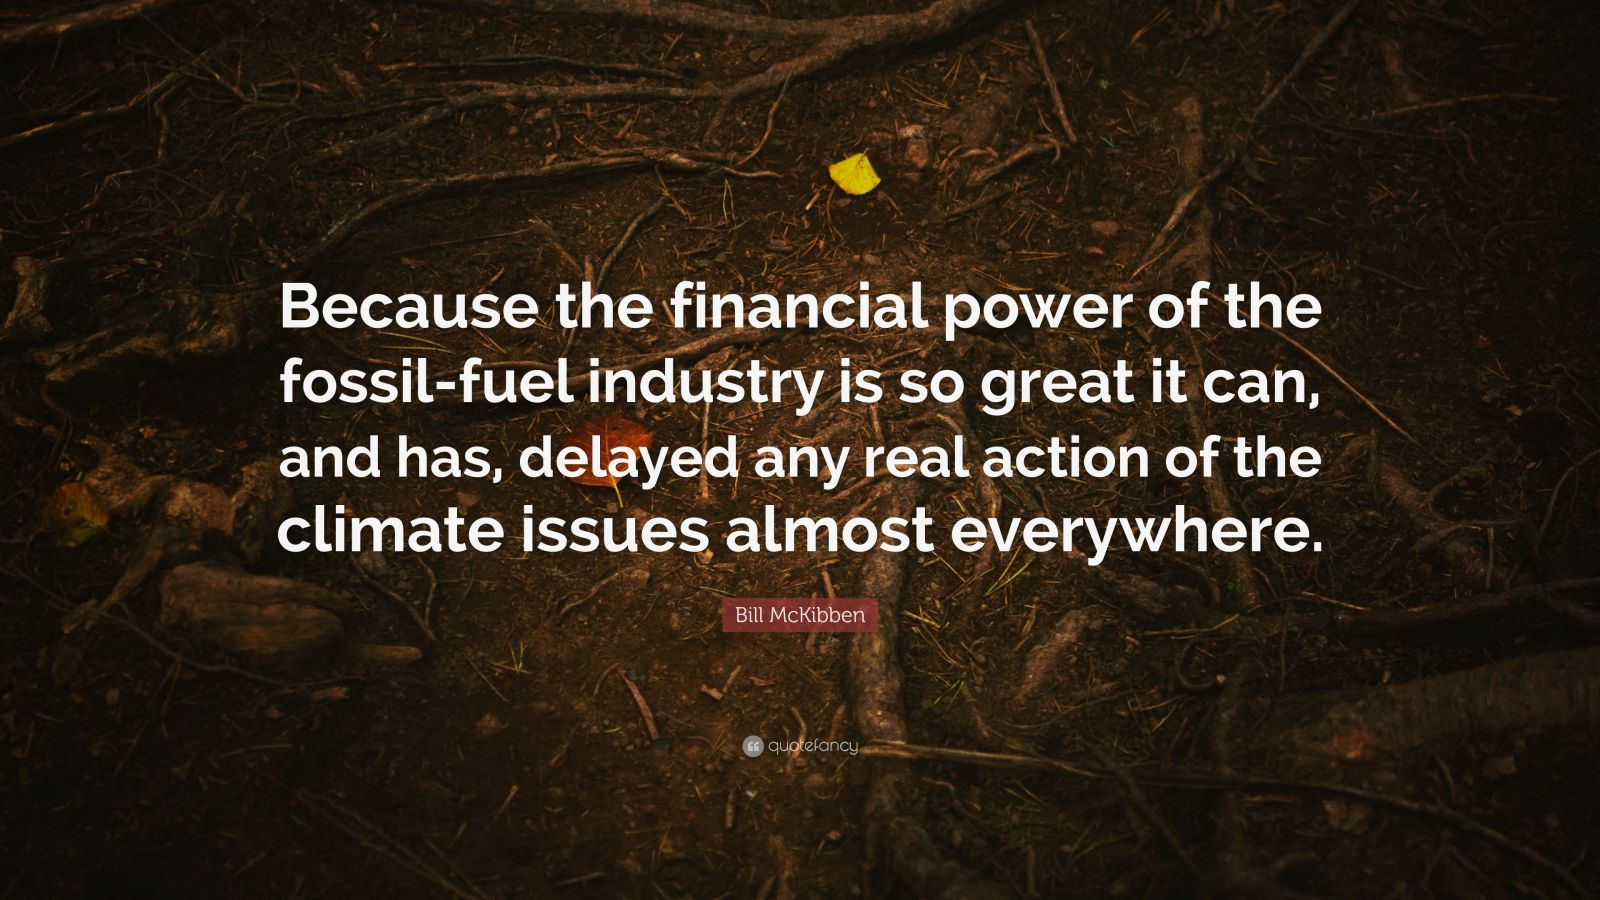 """Bill McKibben Quote: """"Because the financial power of the fossil-fuel industry is so great it can, and has, delayed any real action of the climate issues almost everywhere."""""""